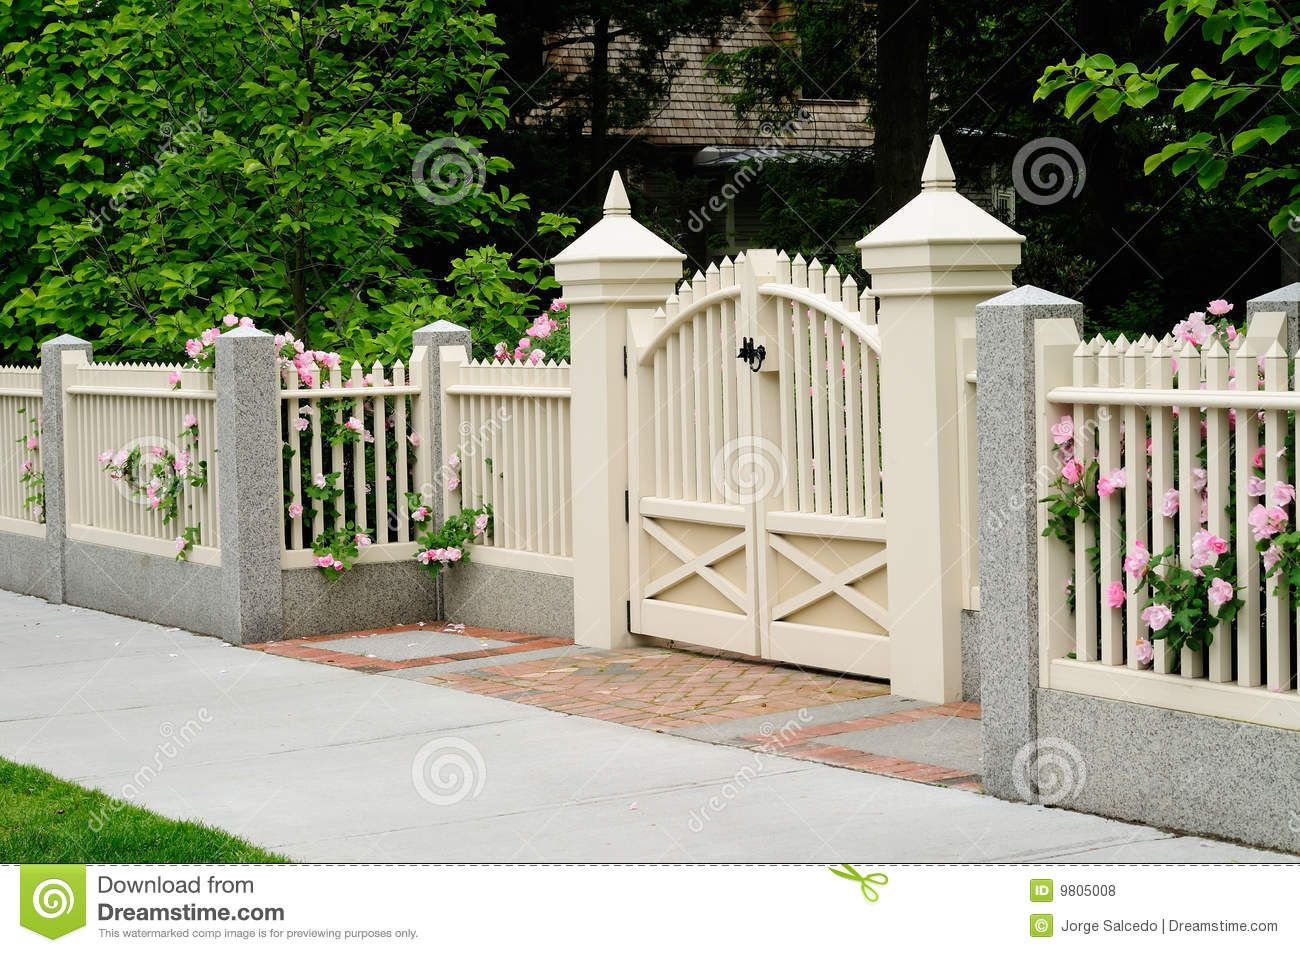 brick column and white fence with gate | Elegant Gate and Fence on ...